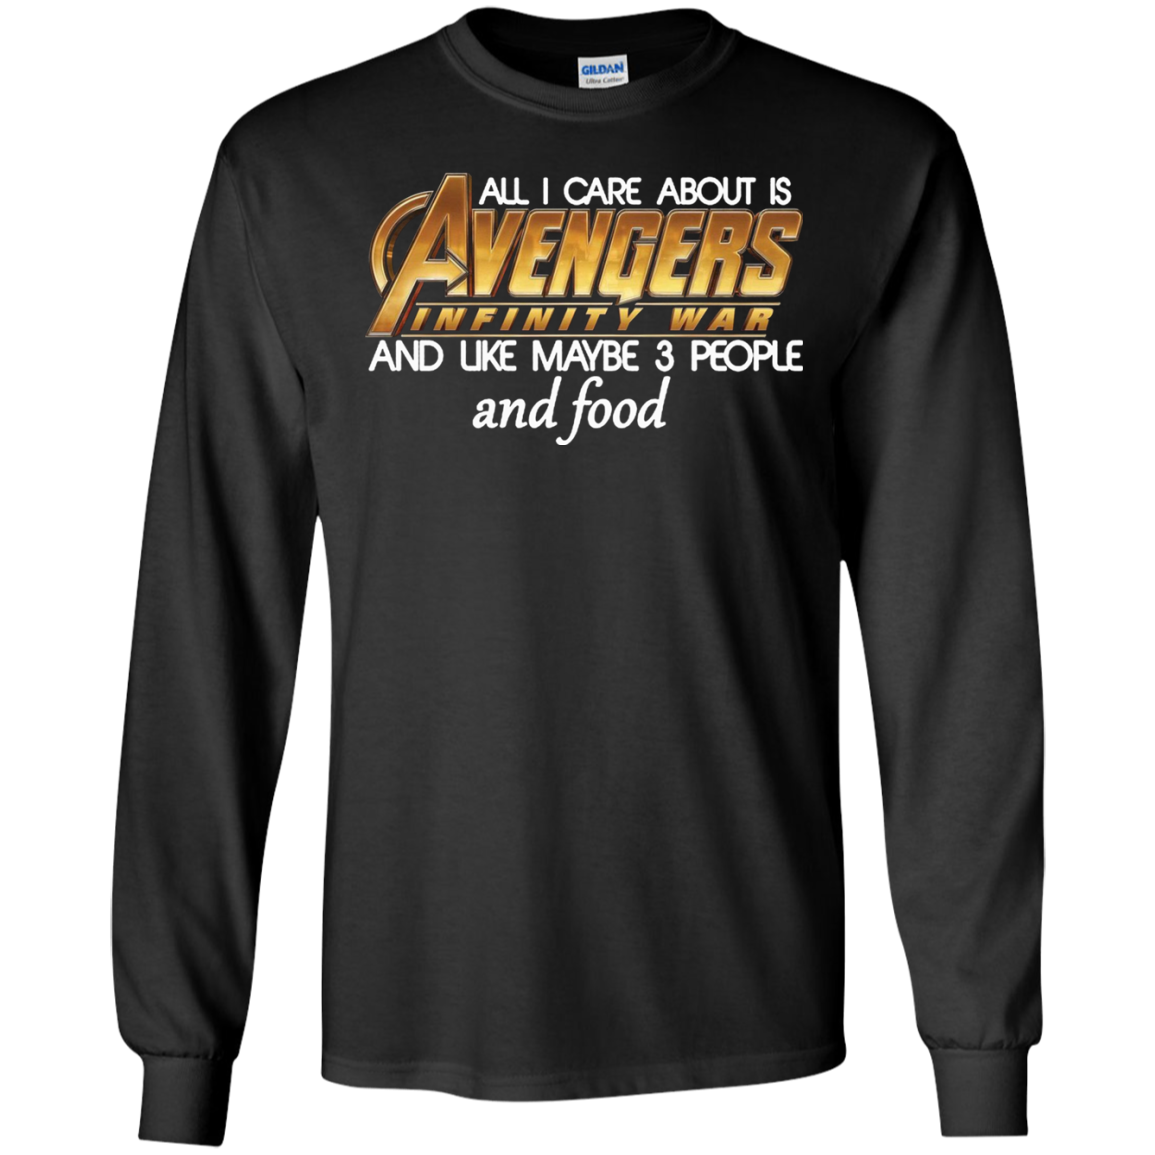 All I Care About Is Avengers Infinity War And Like Maybe 3 People Shirt Ultra Cotton shirt Men